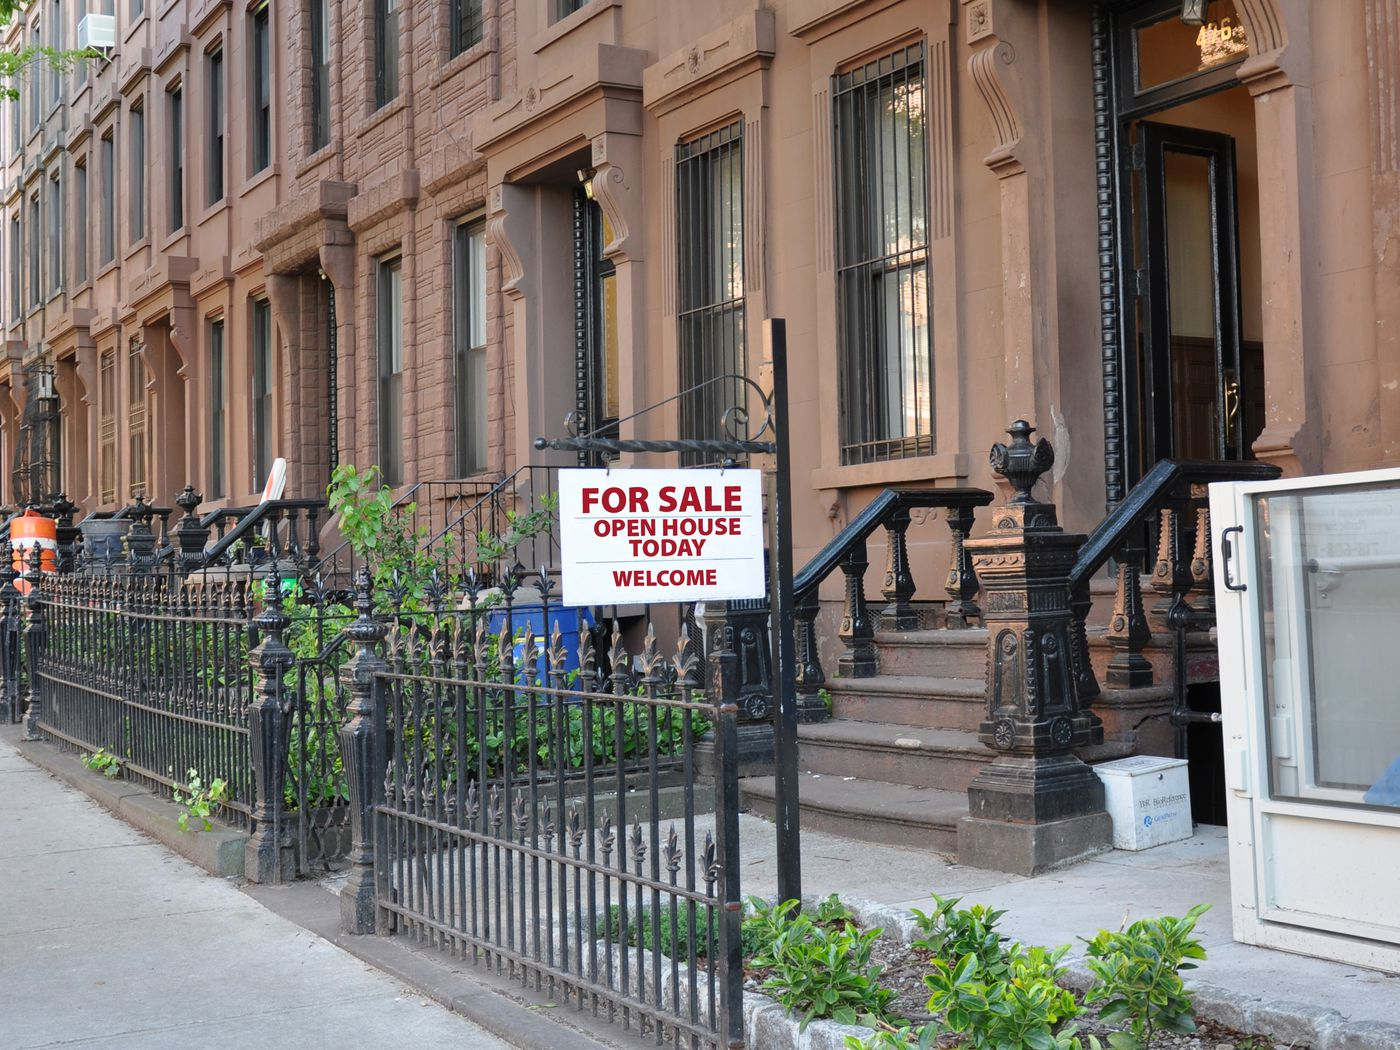 New York S Real Estate Business Is Essential But Showings Must Be Virtual Curbed Ny